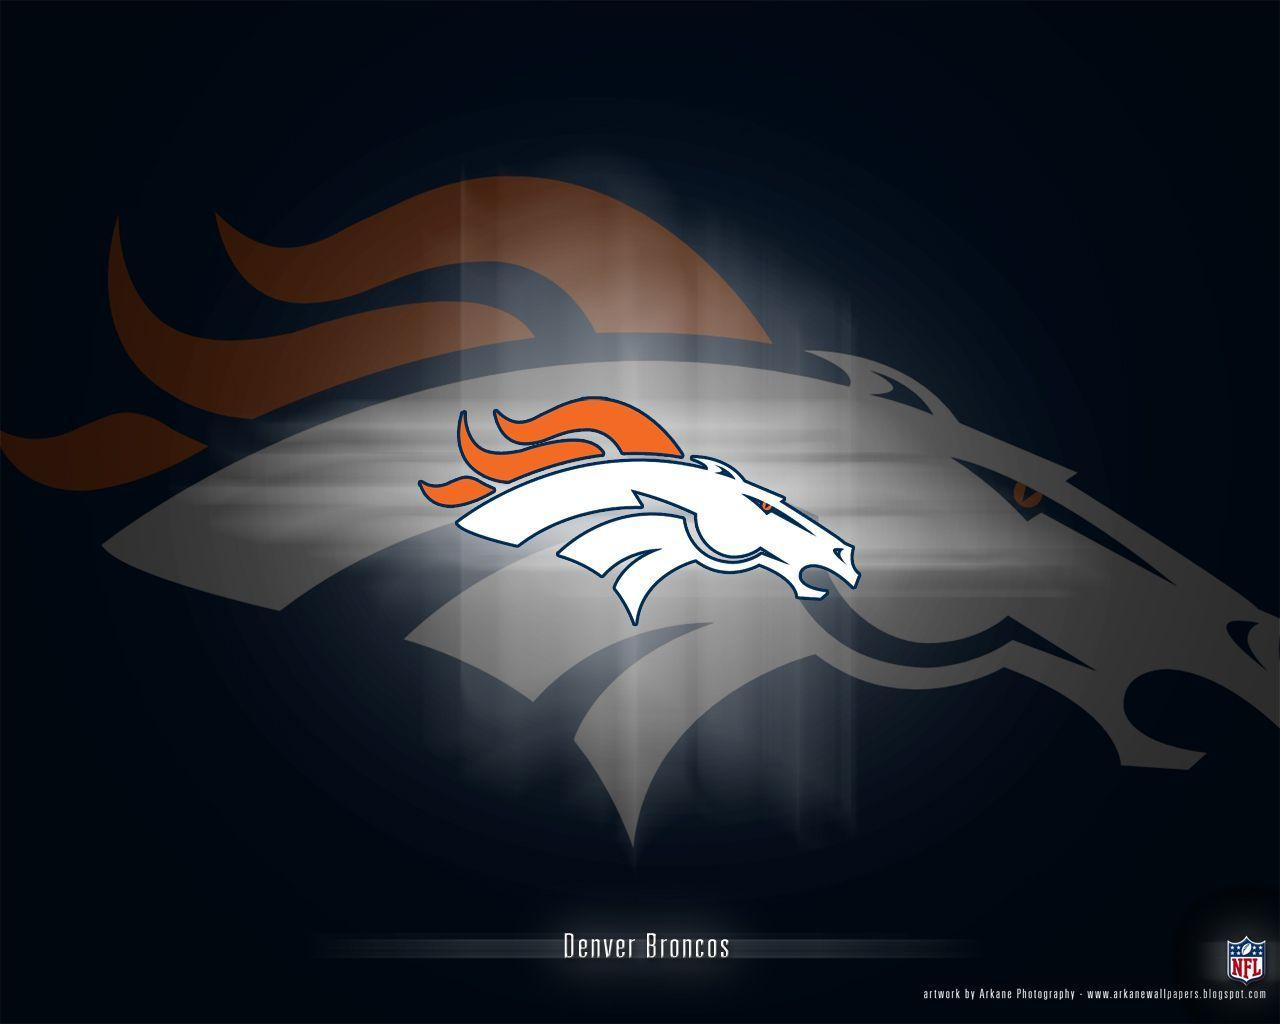 Denver Broncos Desktop Backgrounds Hd 24762 Image